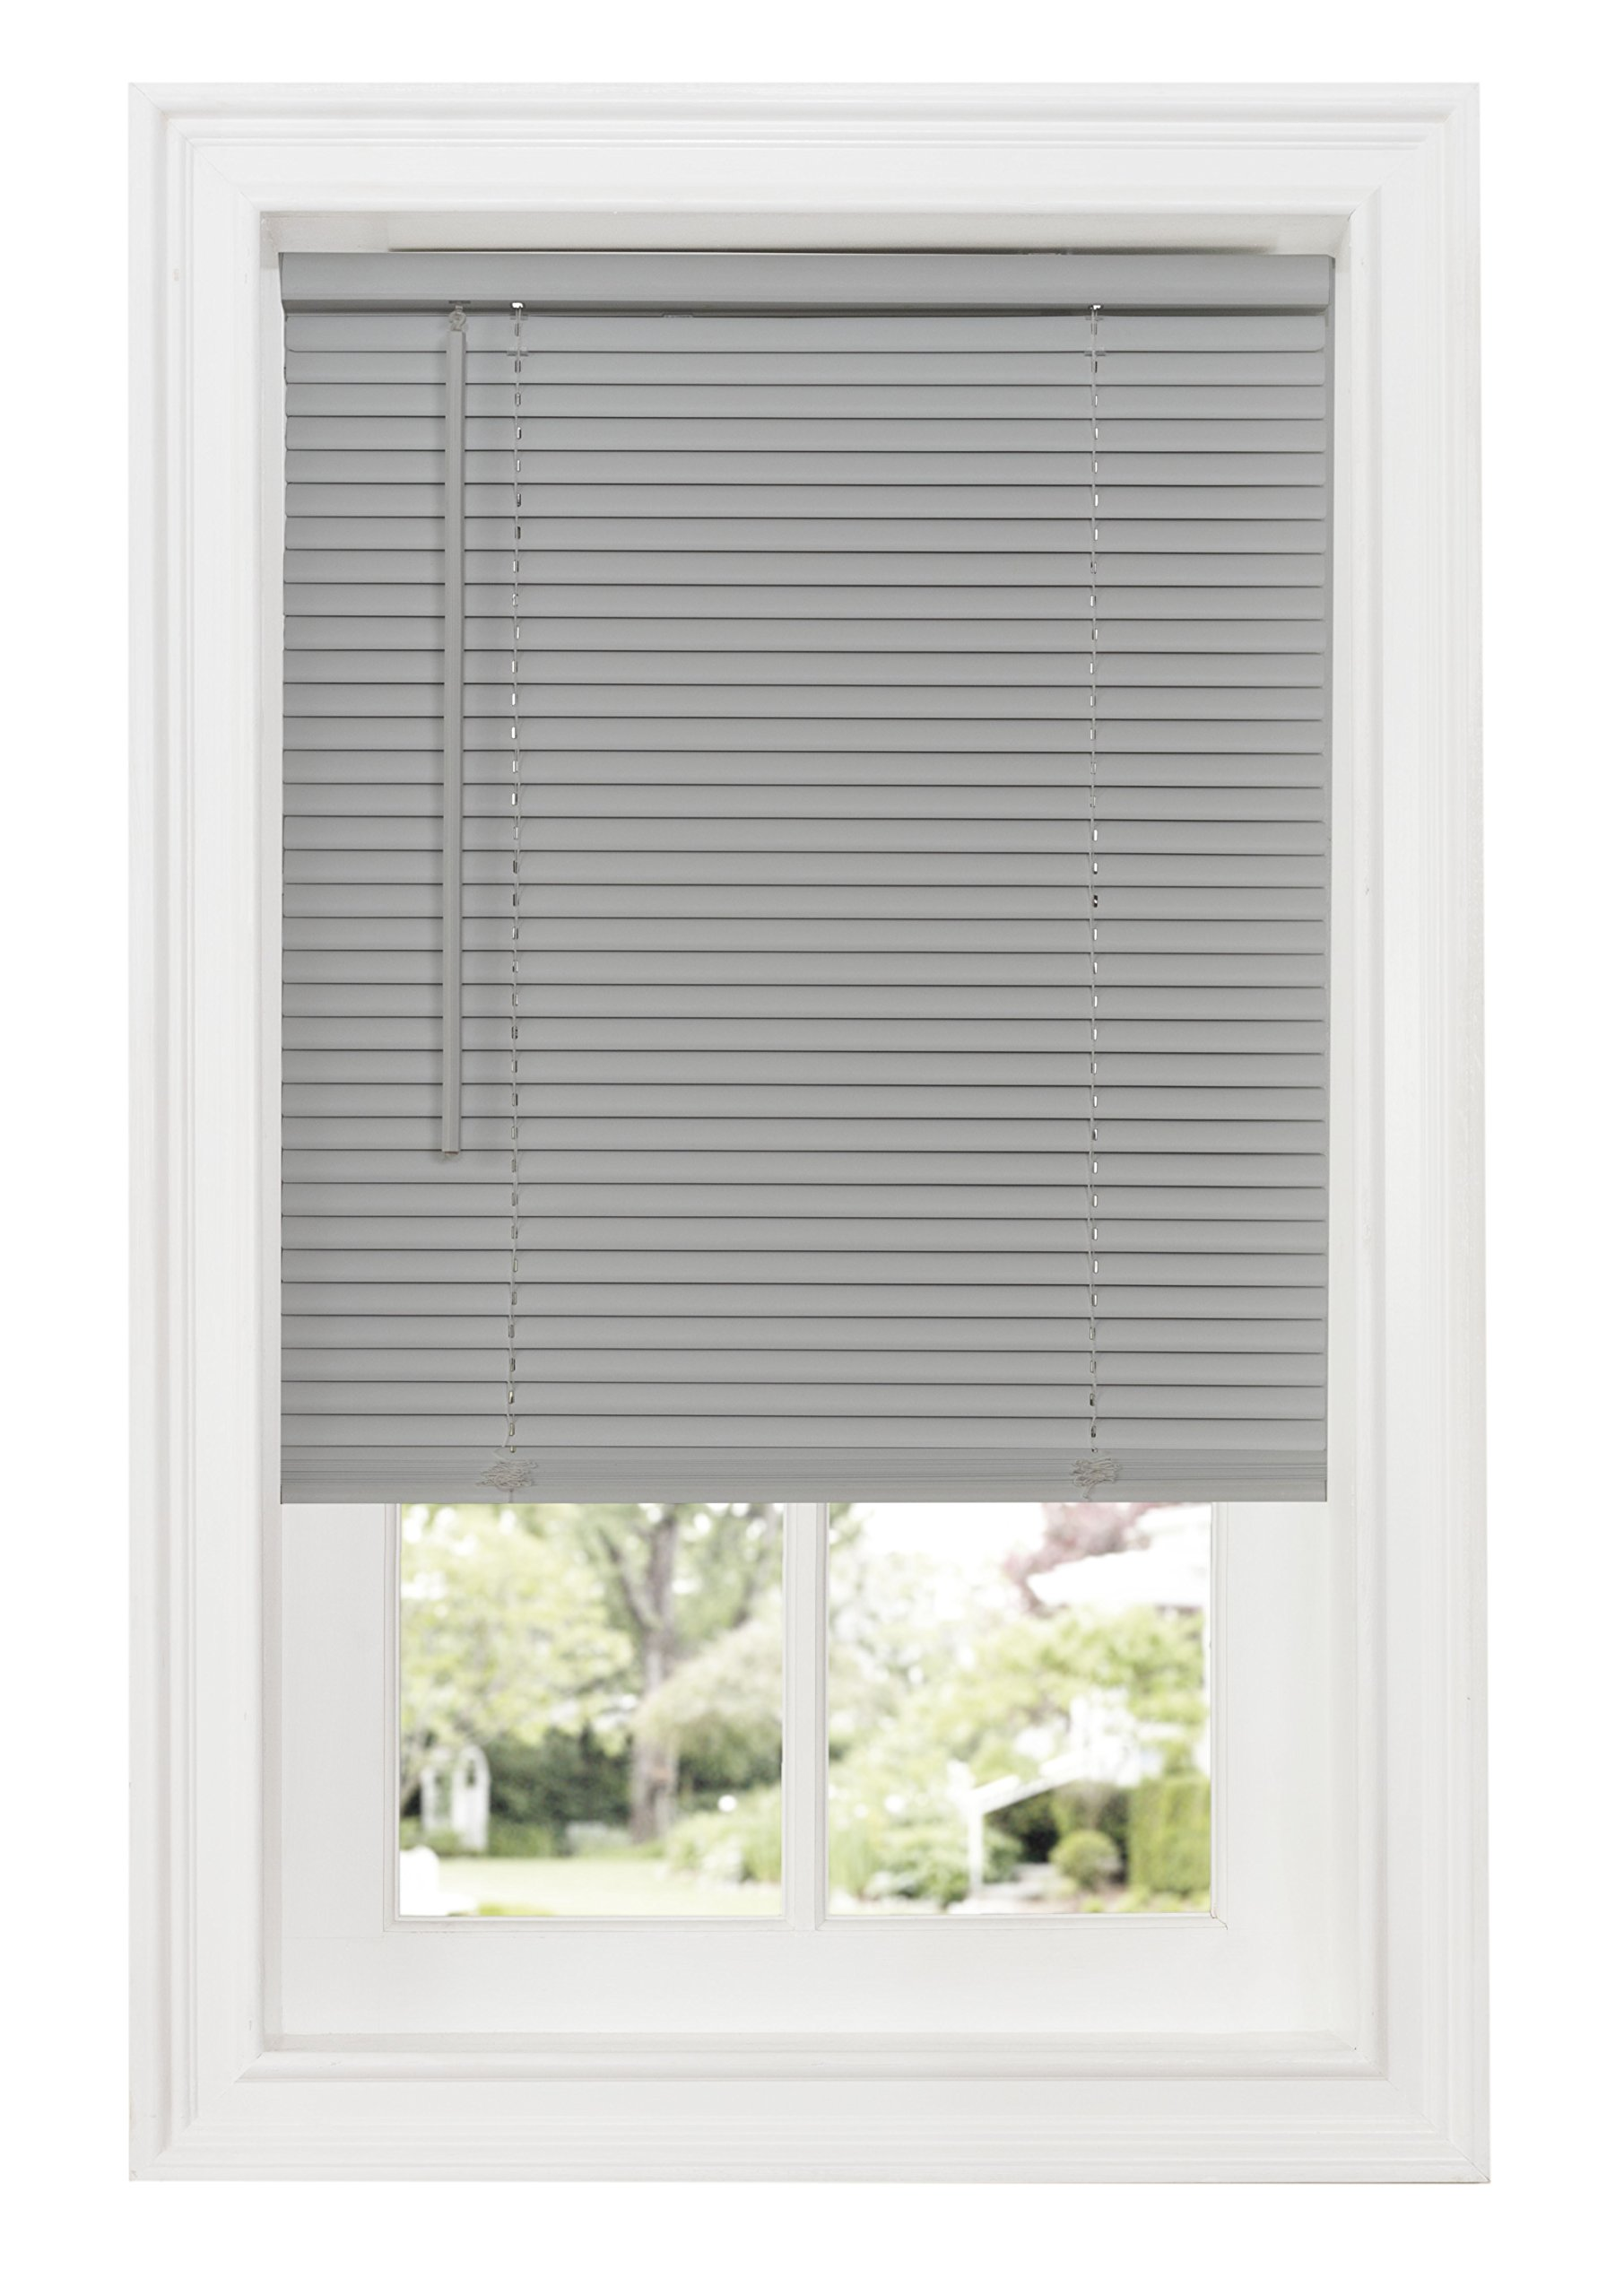 Ben & Jonah Ben&Jonah Cordless GII Deluxe Sundown 1'' Room Darkening Mini Blind 27x64-Grey Collection, Multicolor by Ben & Jonah